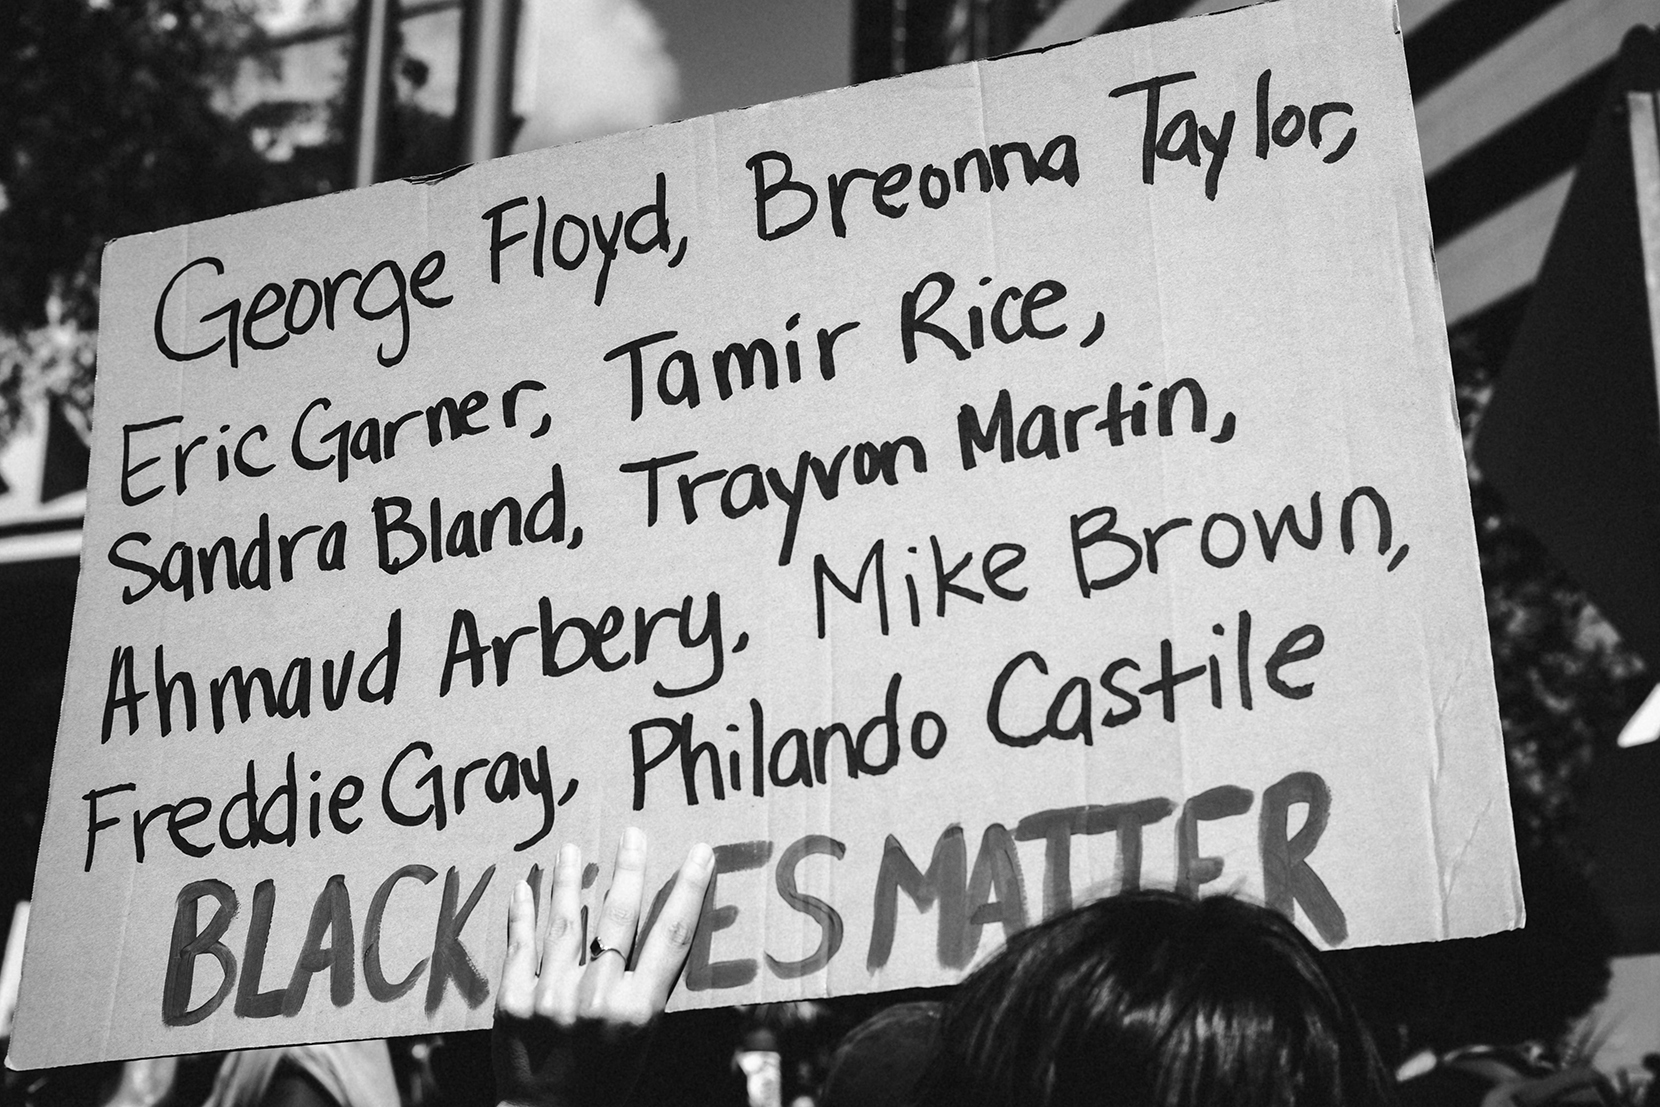 A protestor holds a sign listing the names of those killed, including George Floyd, Breonna Taylor, Eric Garner, Tamir Rice, Sandra Bland, Trayvon Martin, Ahmaud Arbery, Mike Brown, Freddie Gray, Philando Castile. Black Lives Matter